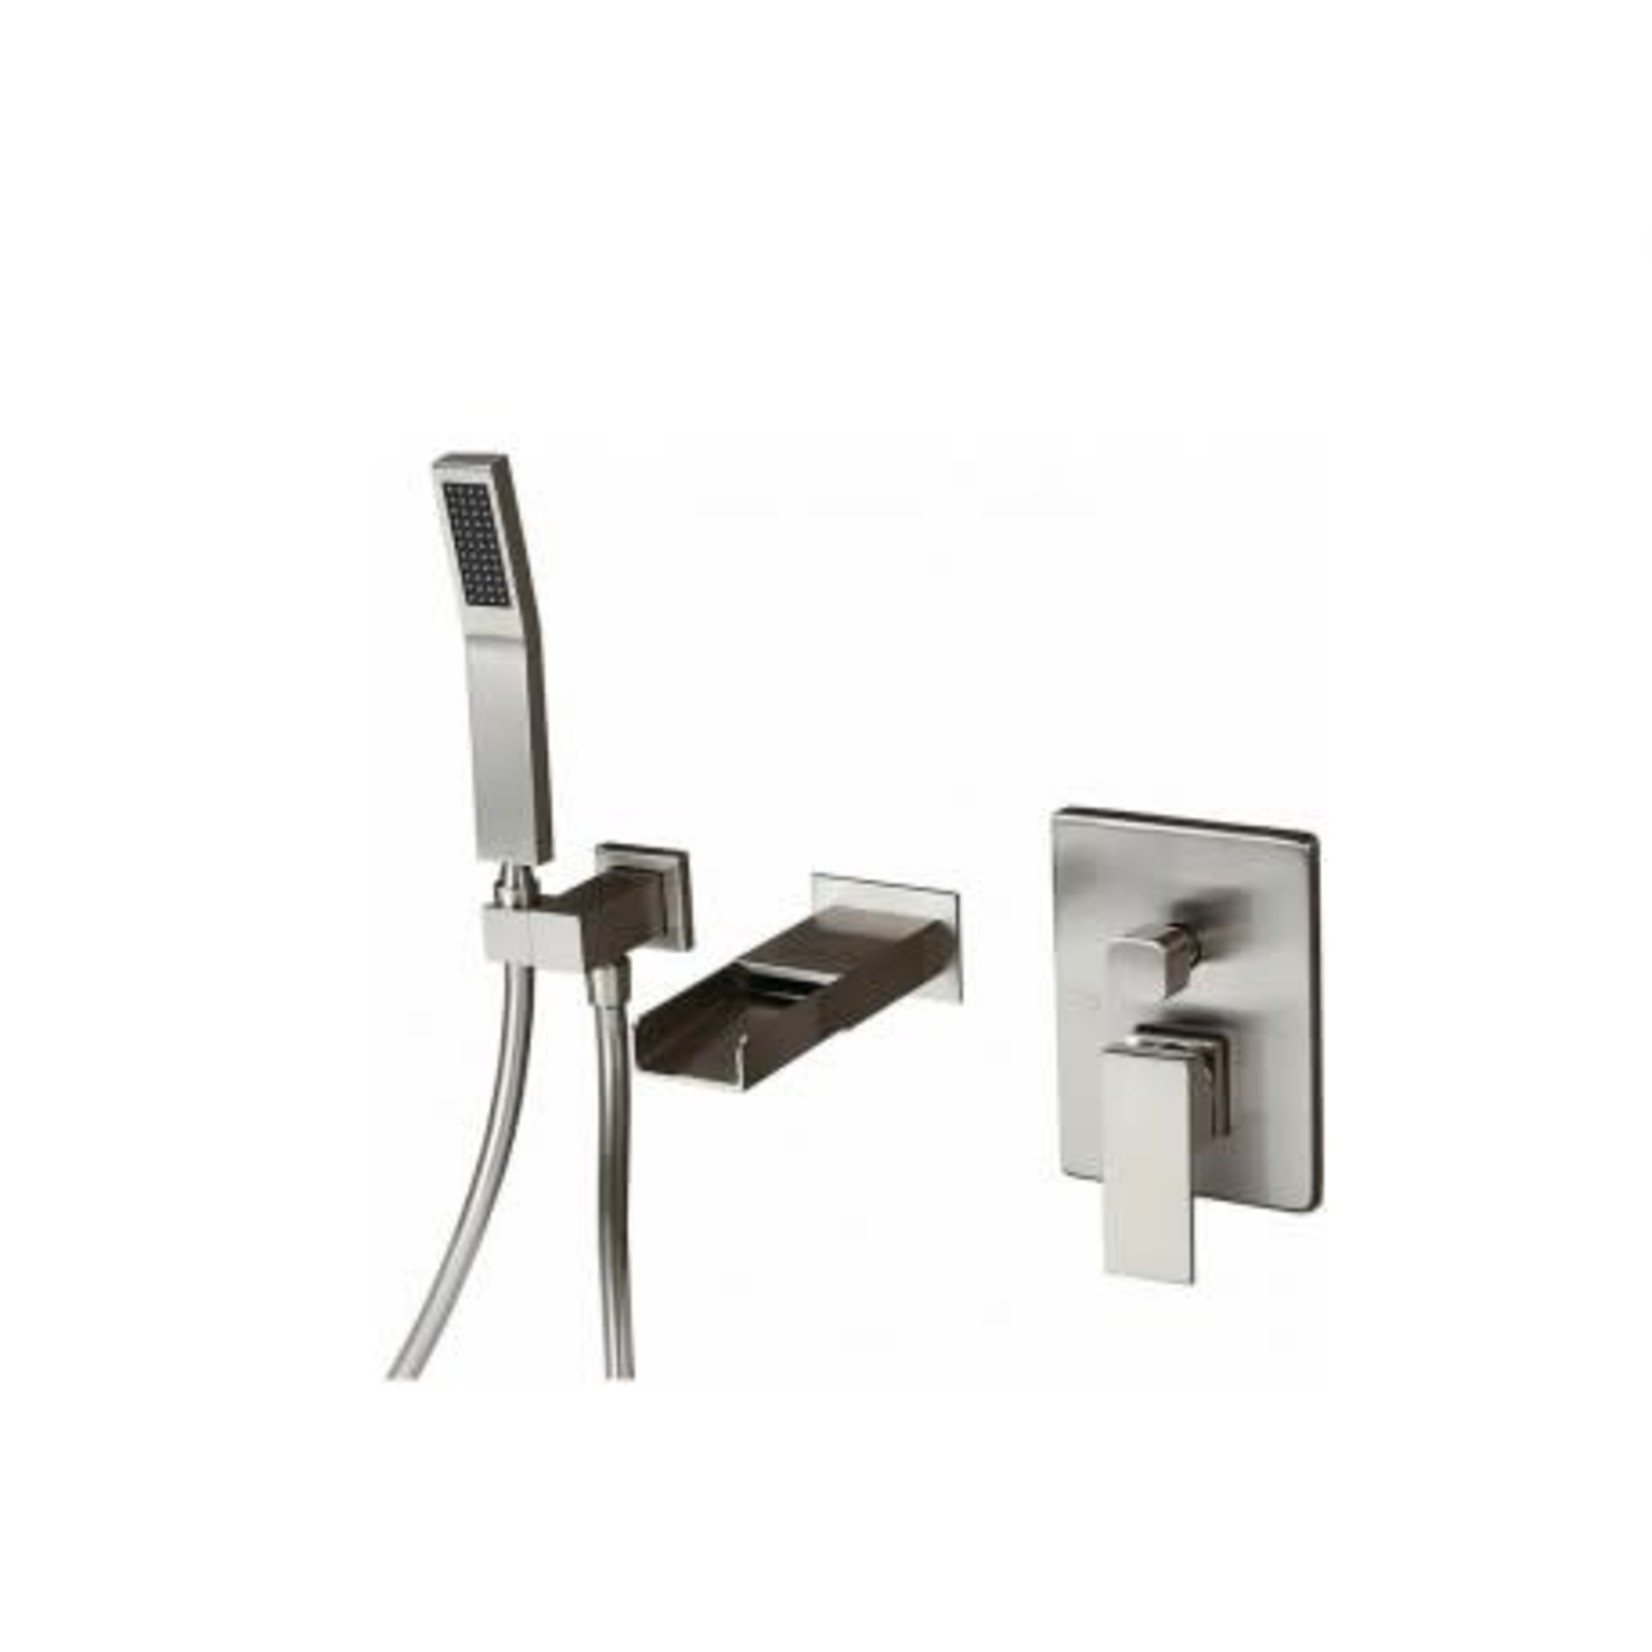 Wall mounted tub faucet 141-10 Brushed finish